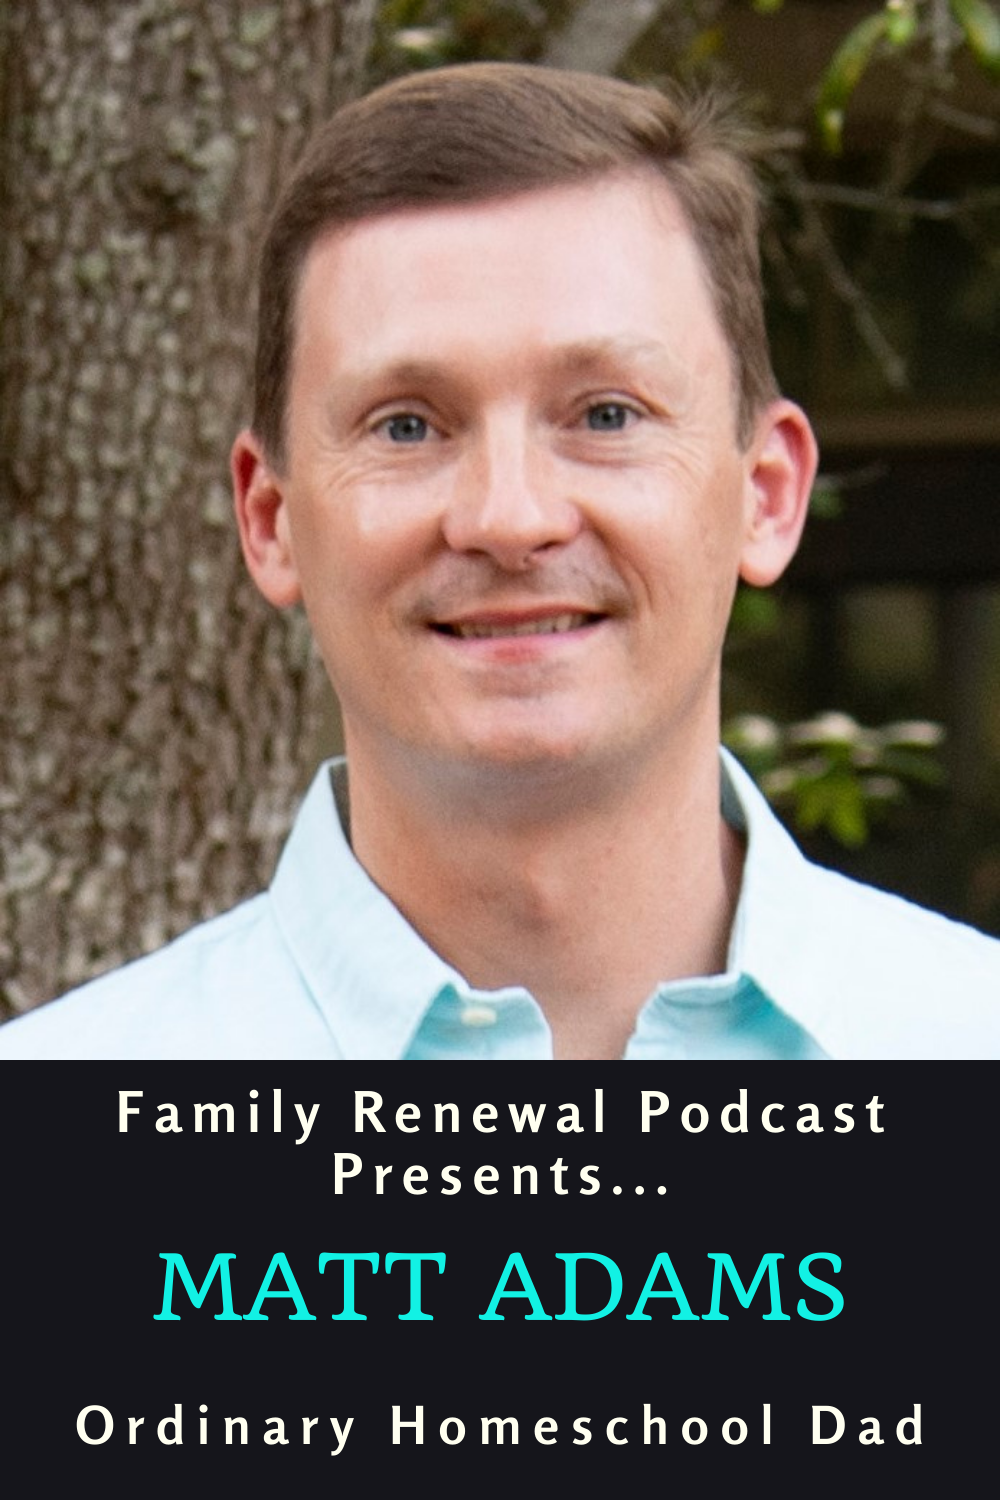 Matt discusses how he changed from being an ordinary guy who was not homeschooled, and knew little about homeschooling, to being an engaged homeschooling father.